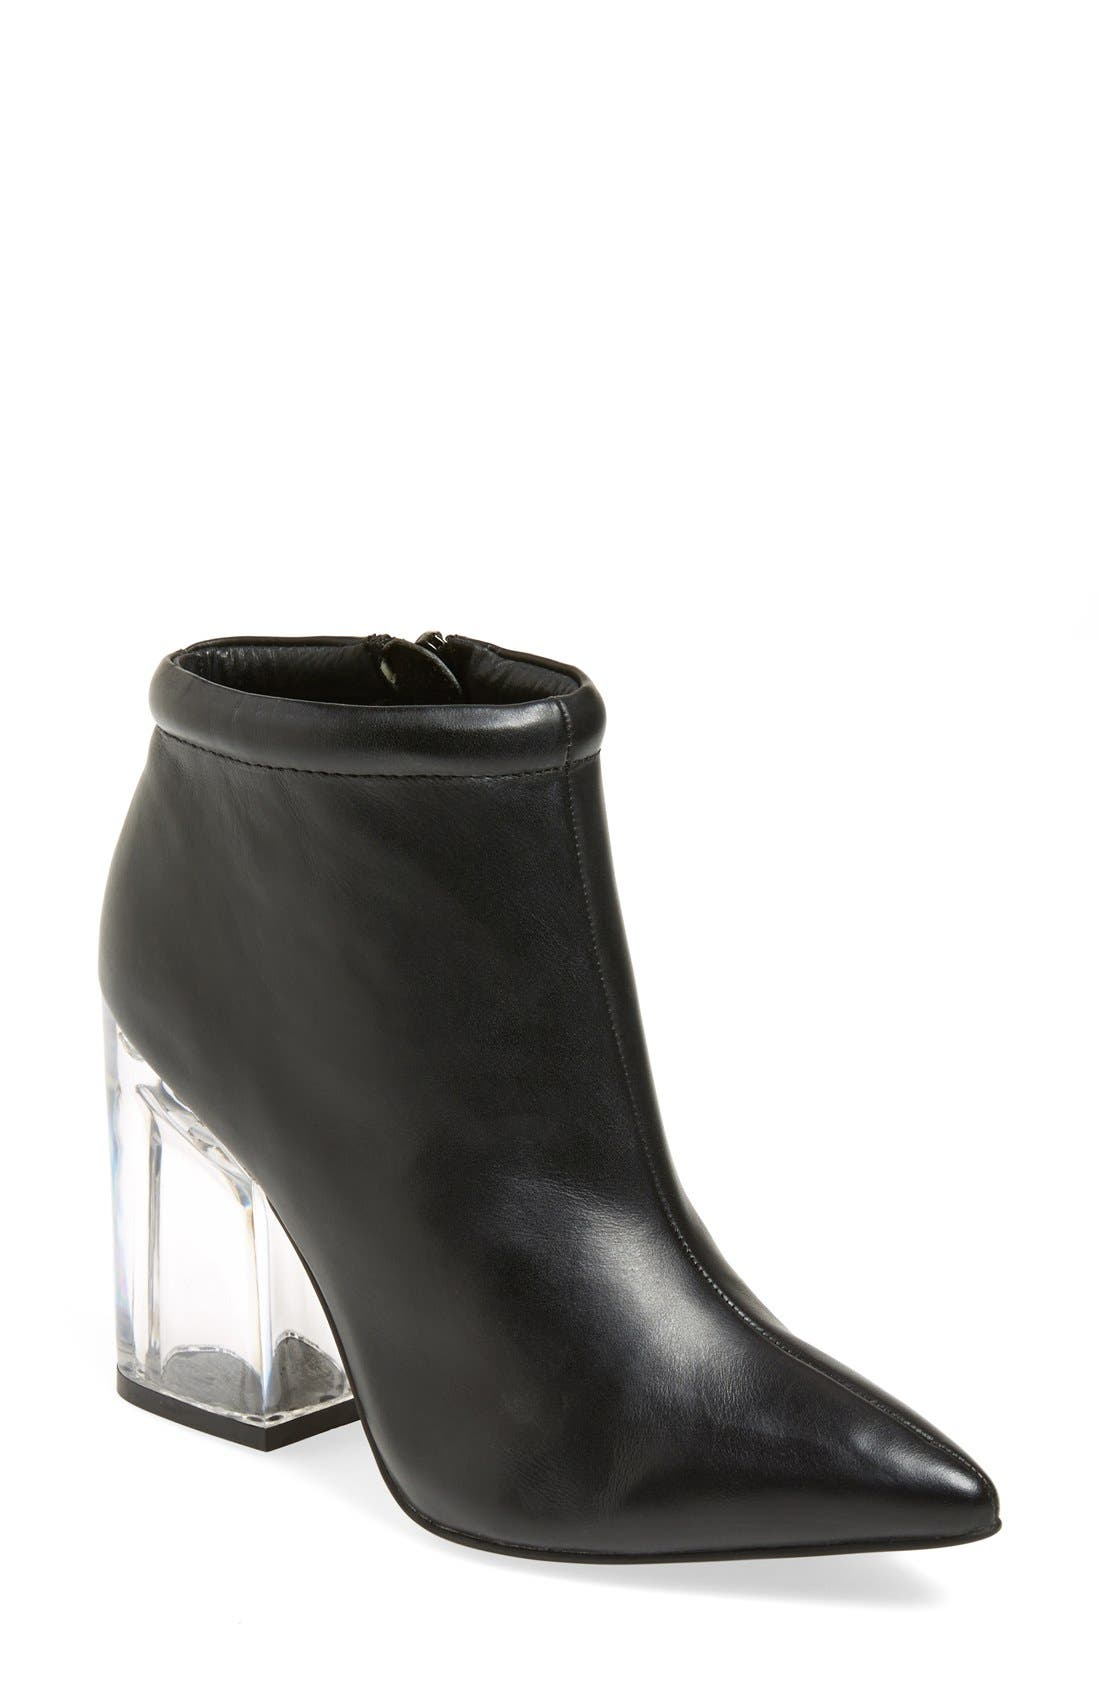 Alternate Image 1 Selected - Jeffrey Campbell 'Truly' Ankle Boot (Women)